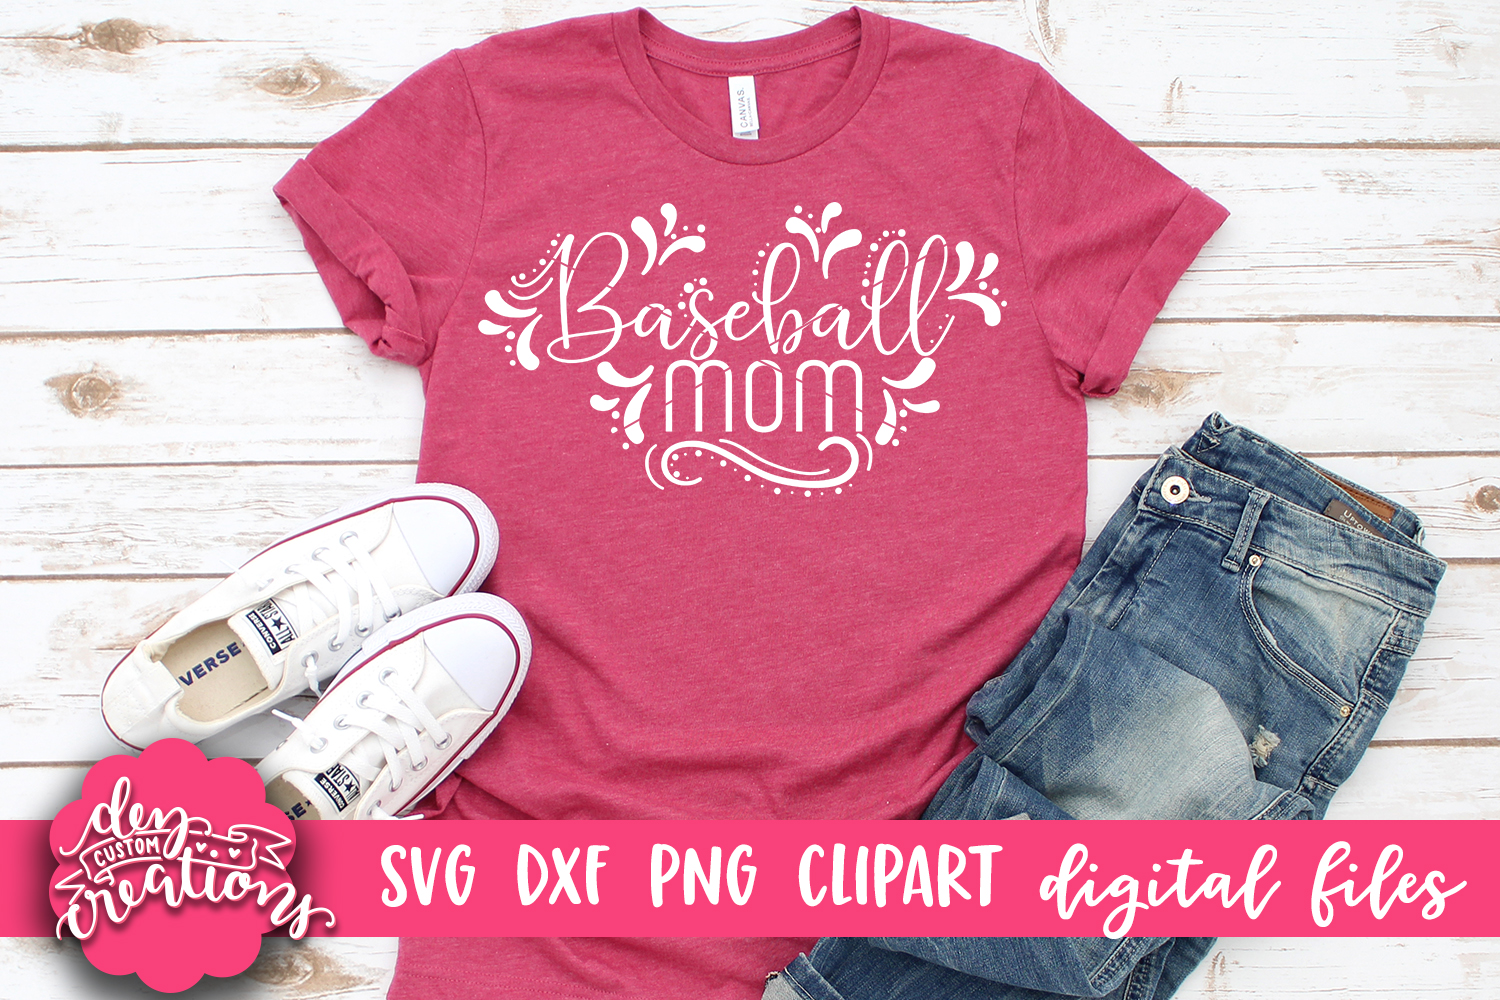 Baseball Mom - SVG DXF PNG digital Cut Files example image 2